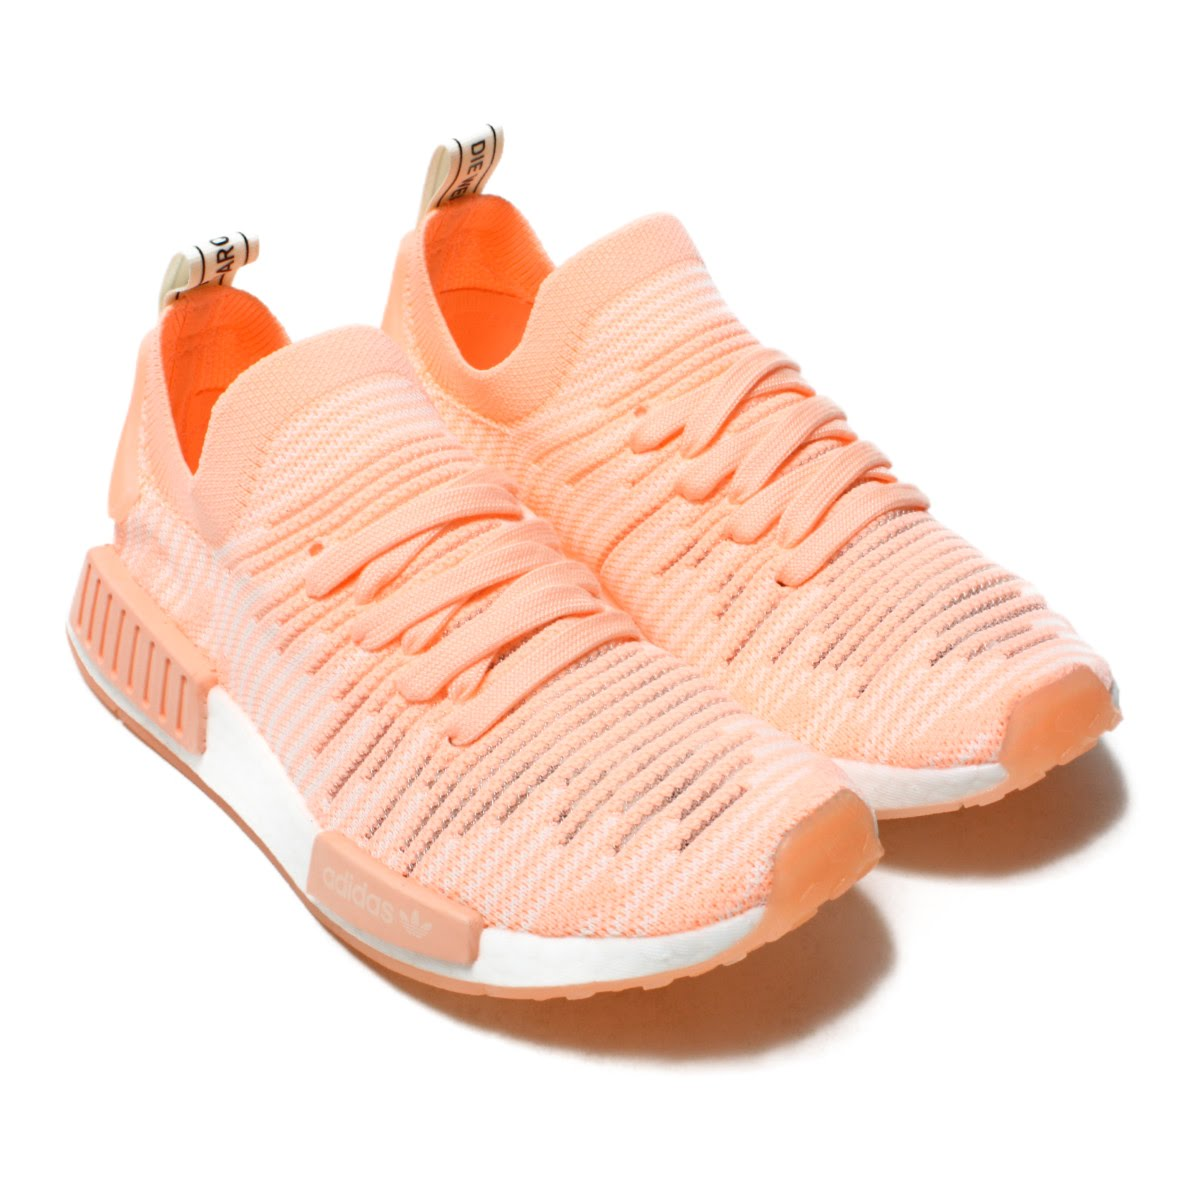 Adidas Originals NMD R1 STLT Pk W Women Boost White Clear